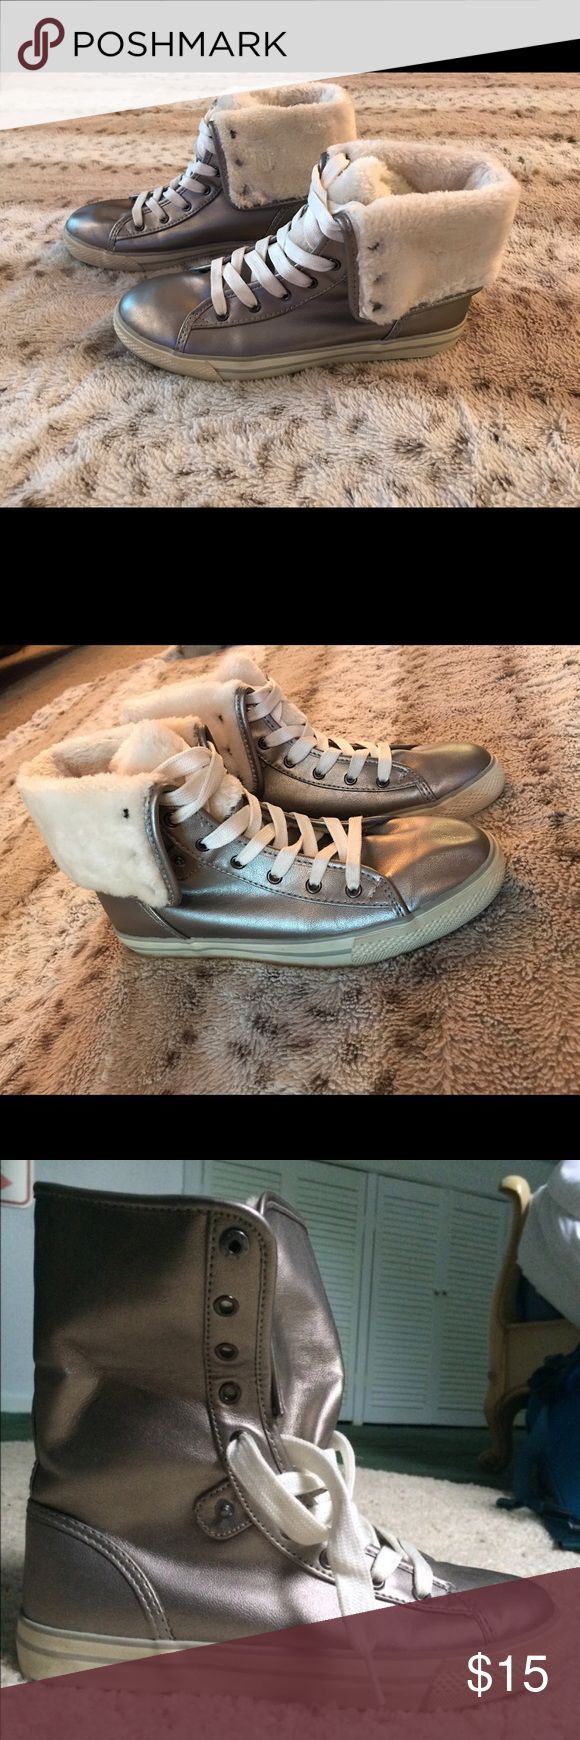 Arizona High Top Sneakers Silver High Top Sneakers with faux fur for great comfort! Only been worn 3 times, in great condition! Size 8 can be folded down for sneaker look or up for the high top look. Arizona Jean Company Shoes Sneakers